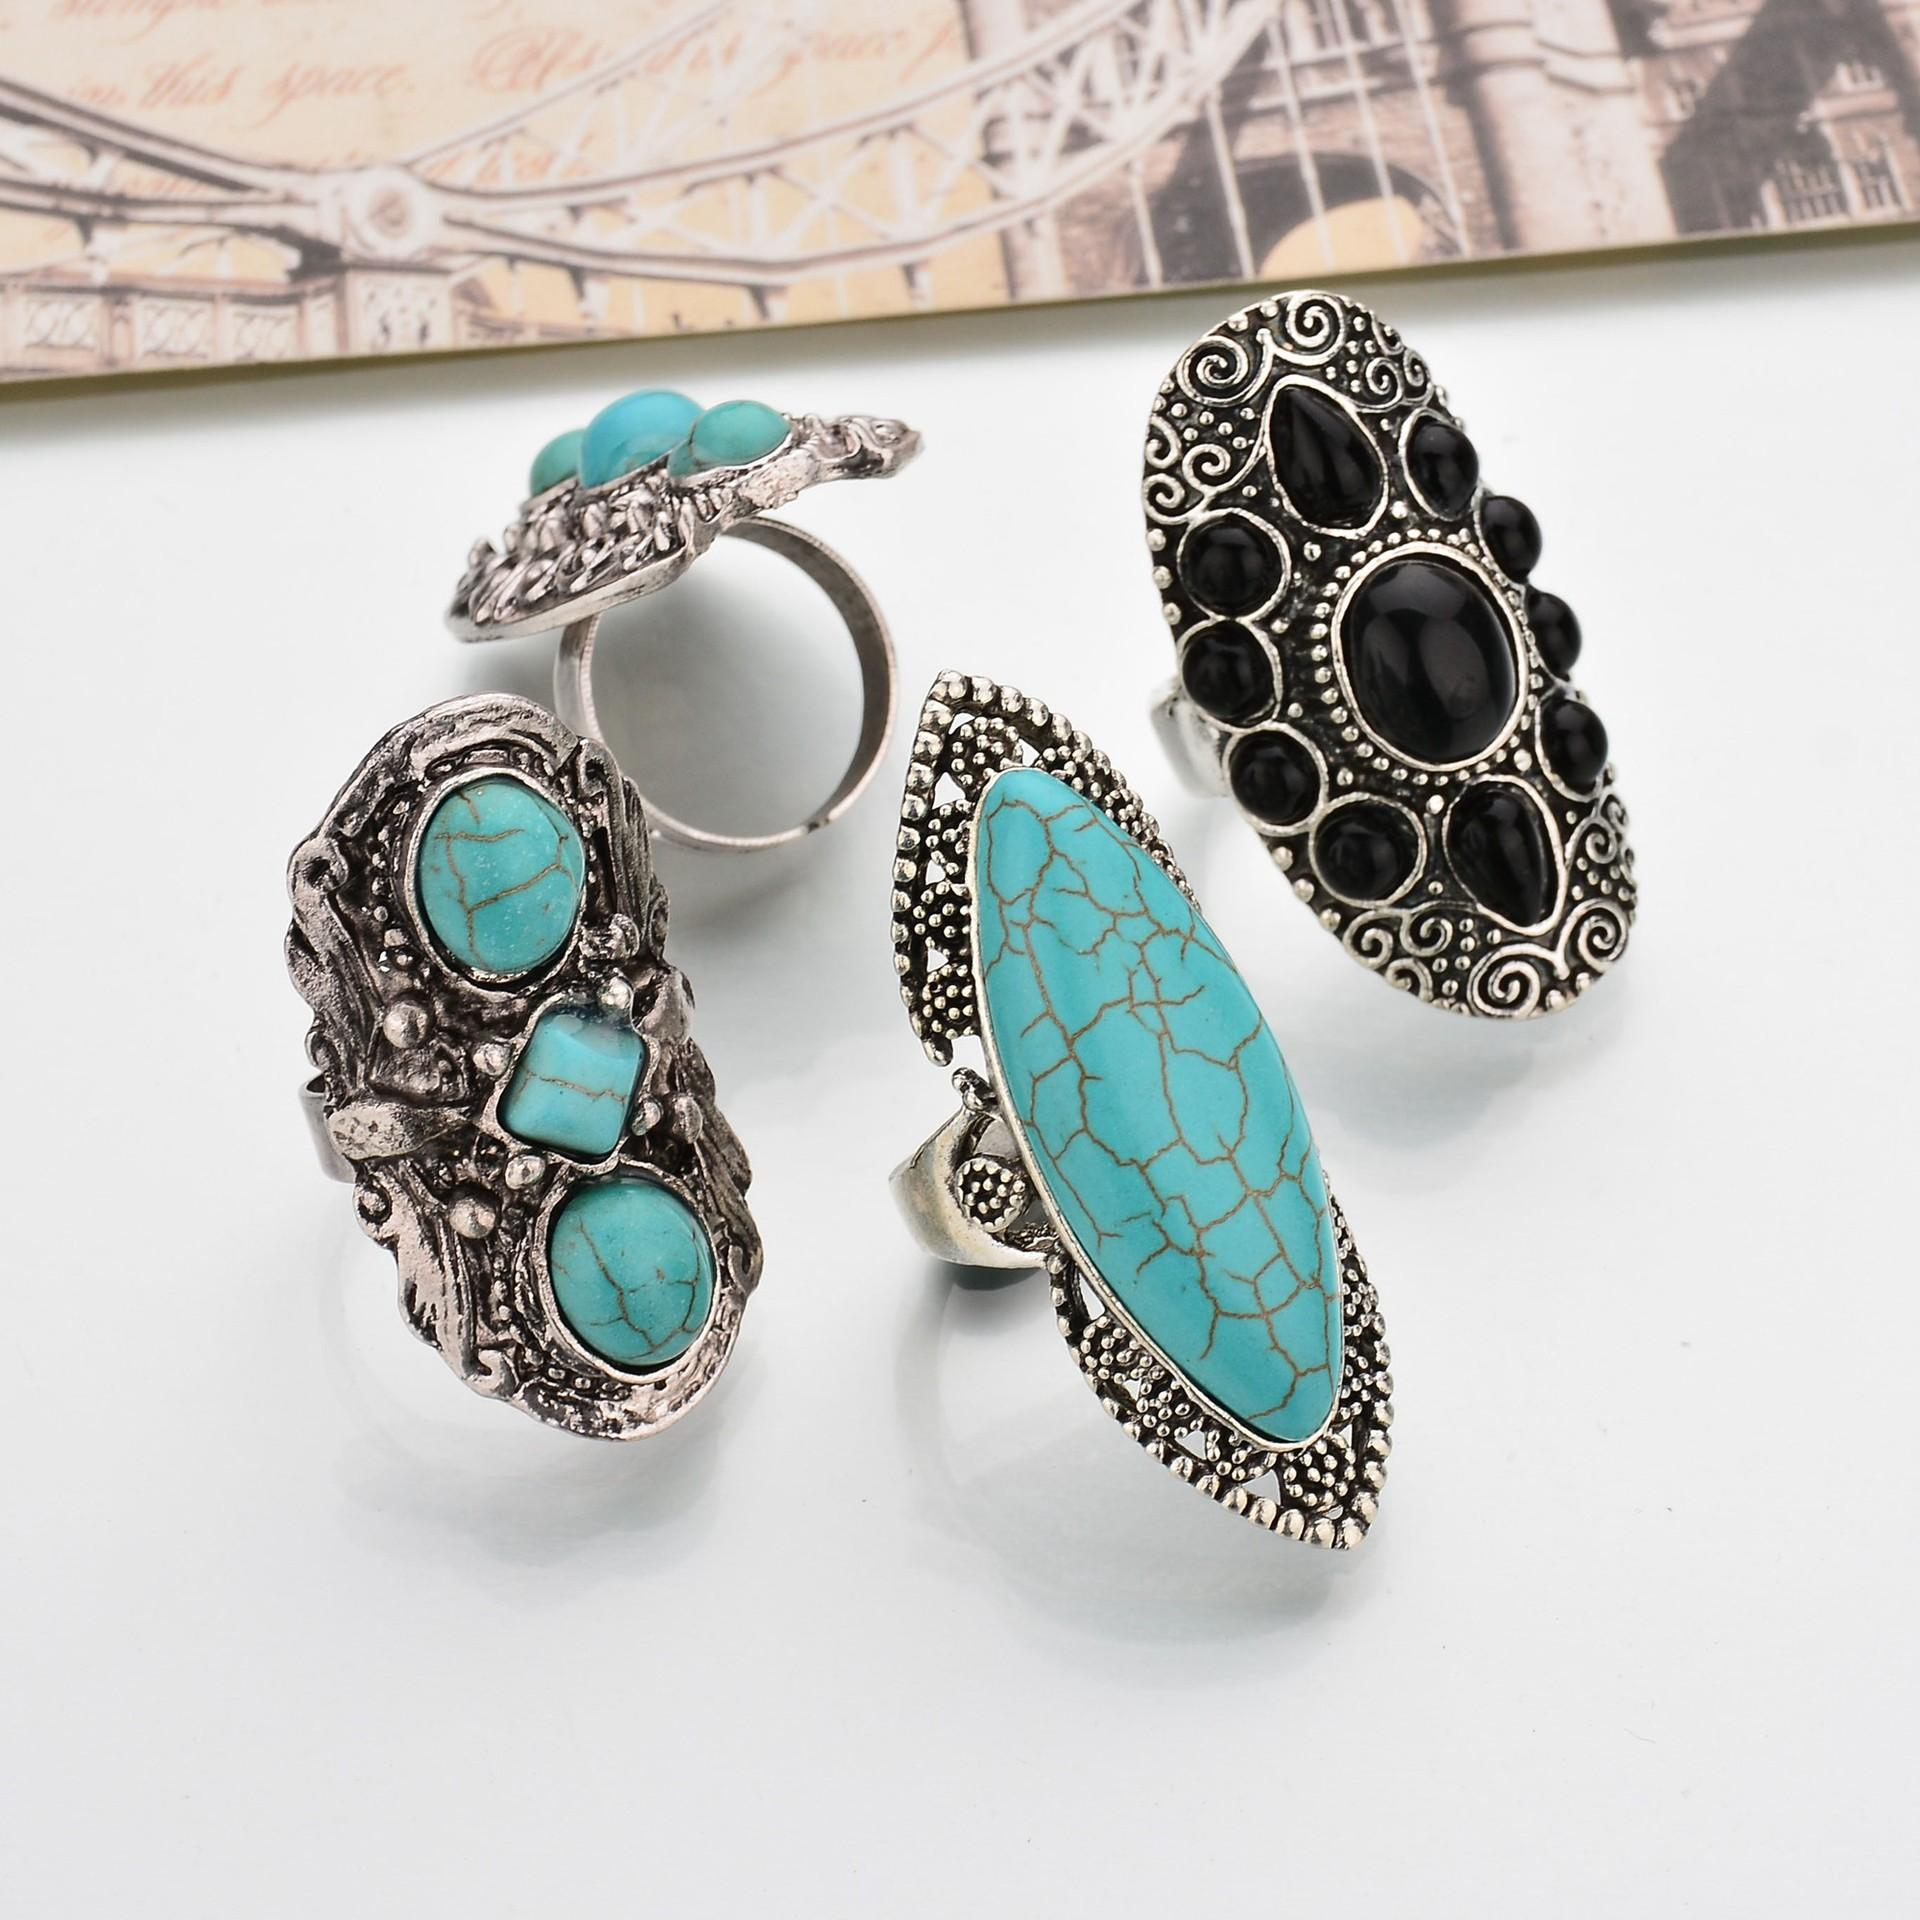 Bohemian Retro Blue Turquoise Ring Sliver Carved Women Rings Accessories